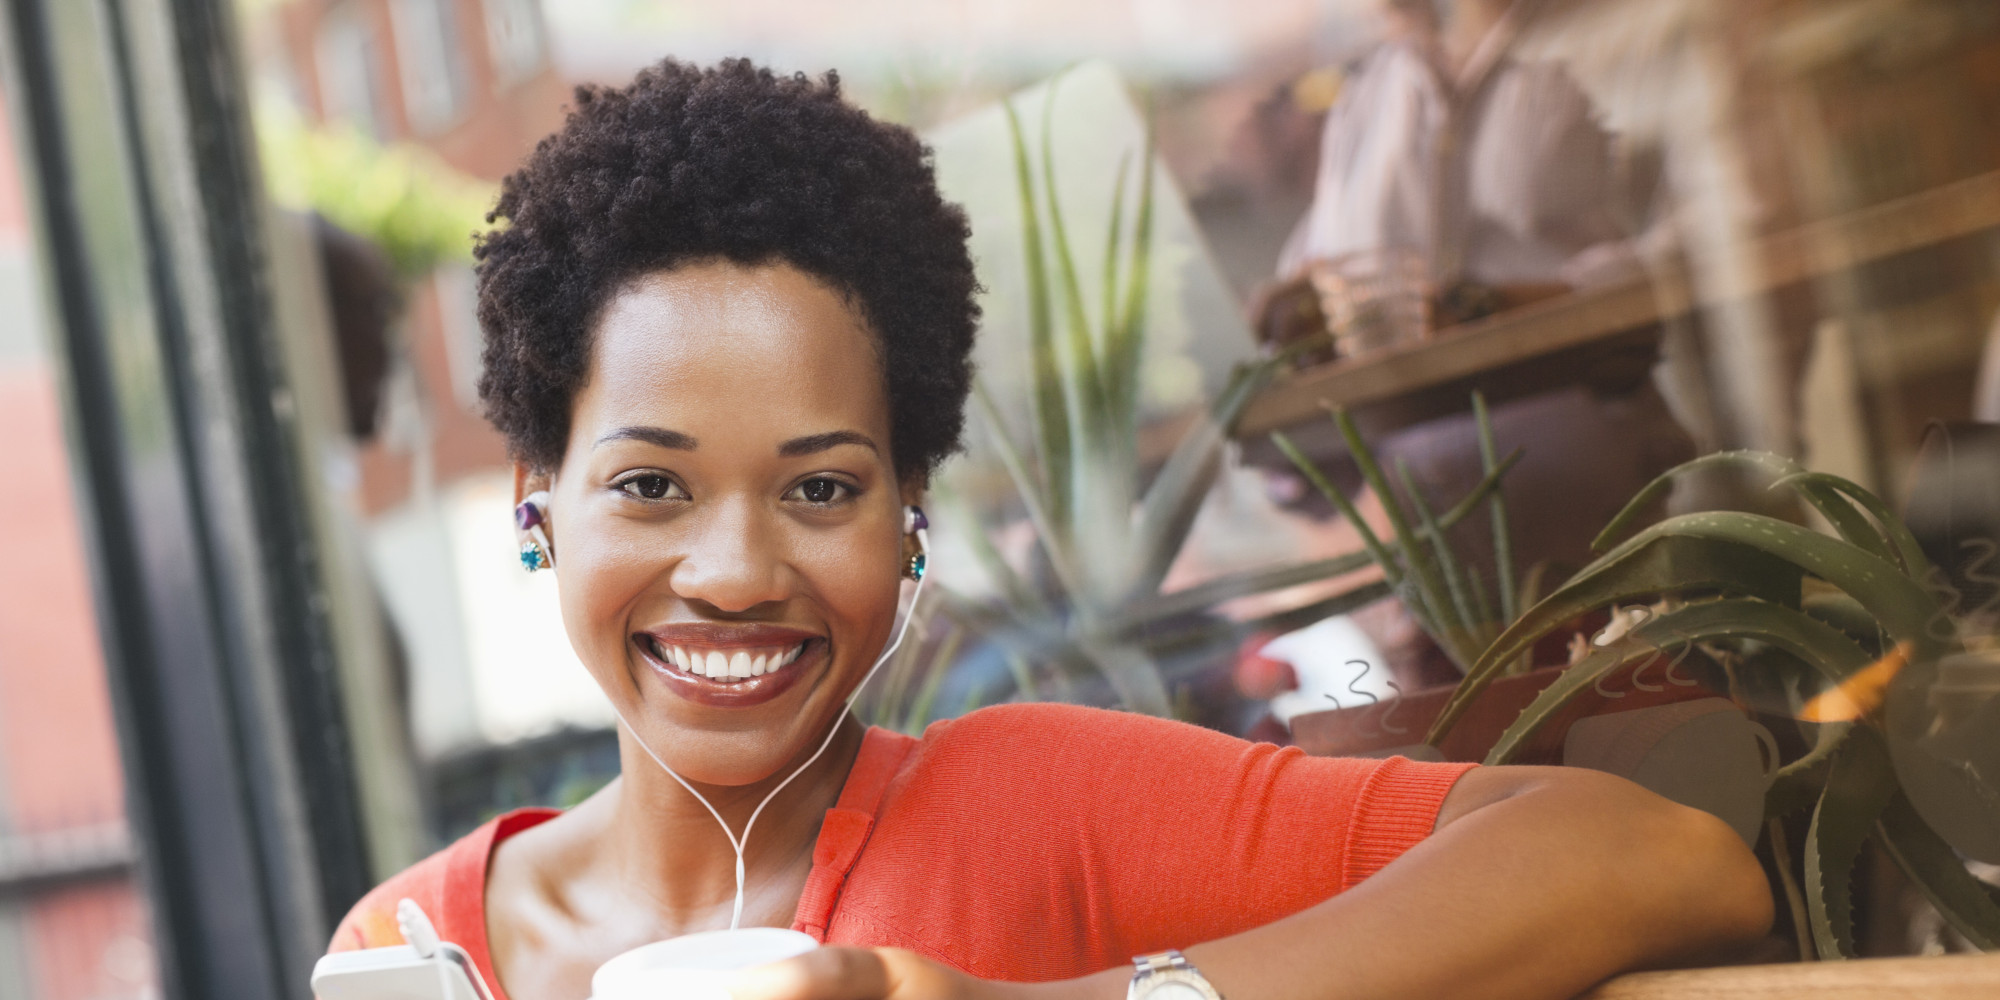 10 tips on dating a strong black woman